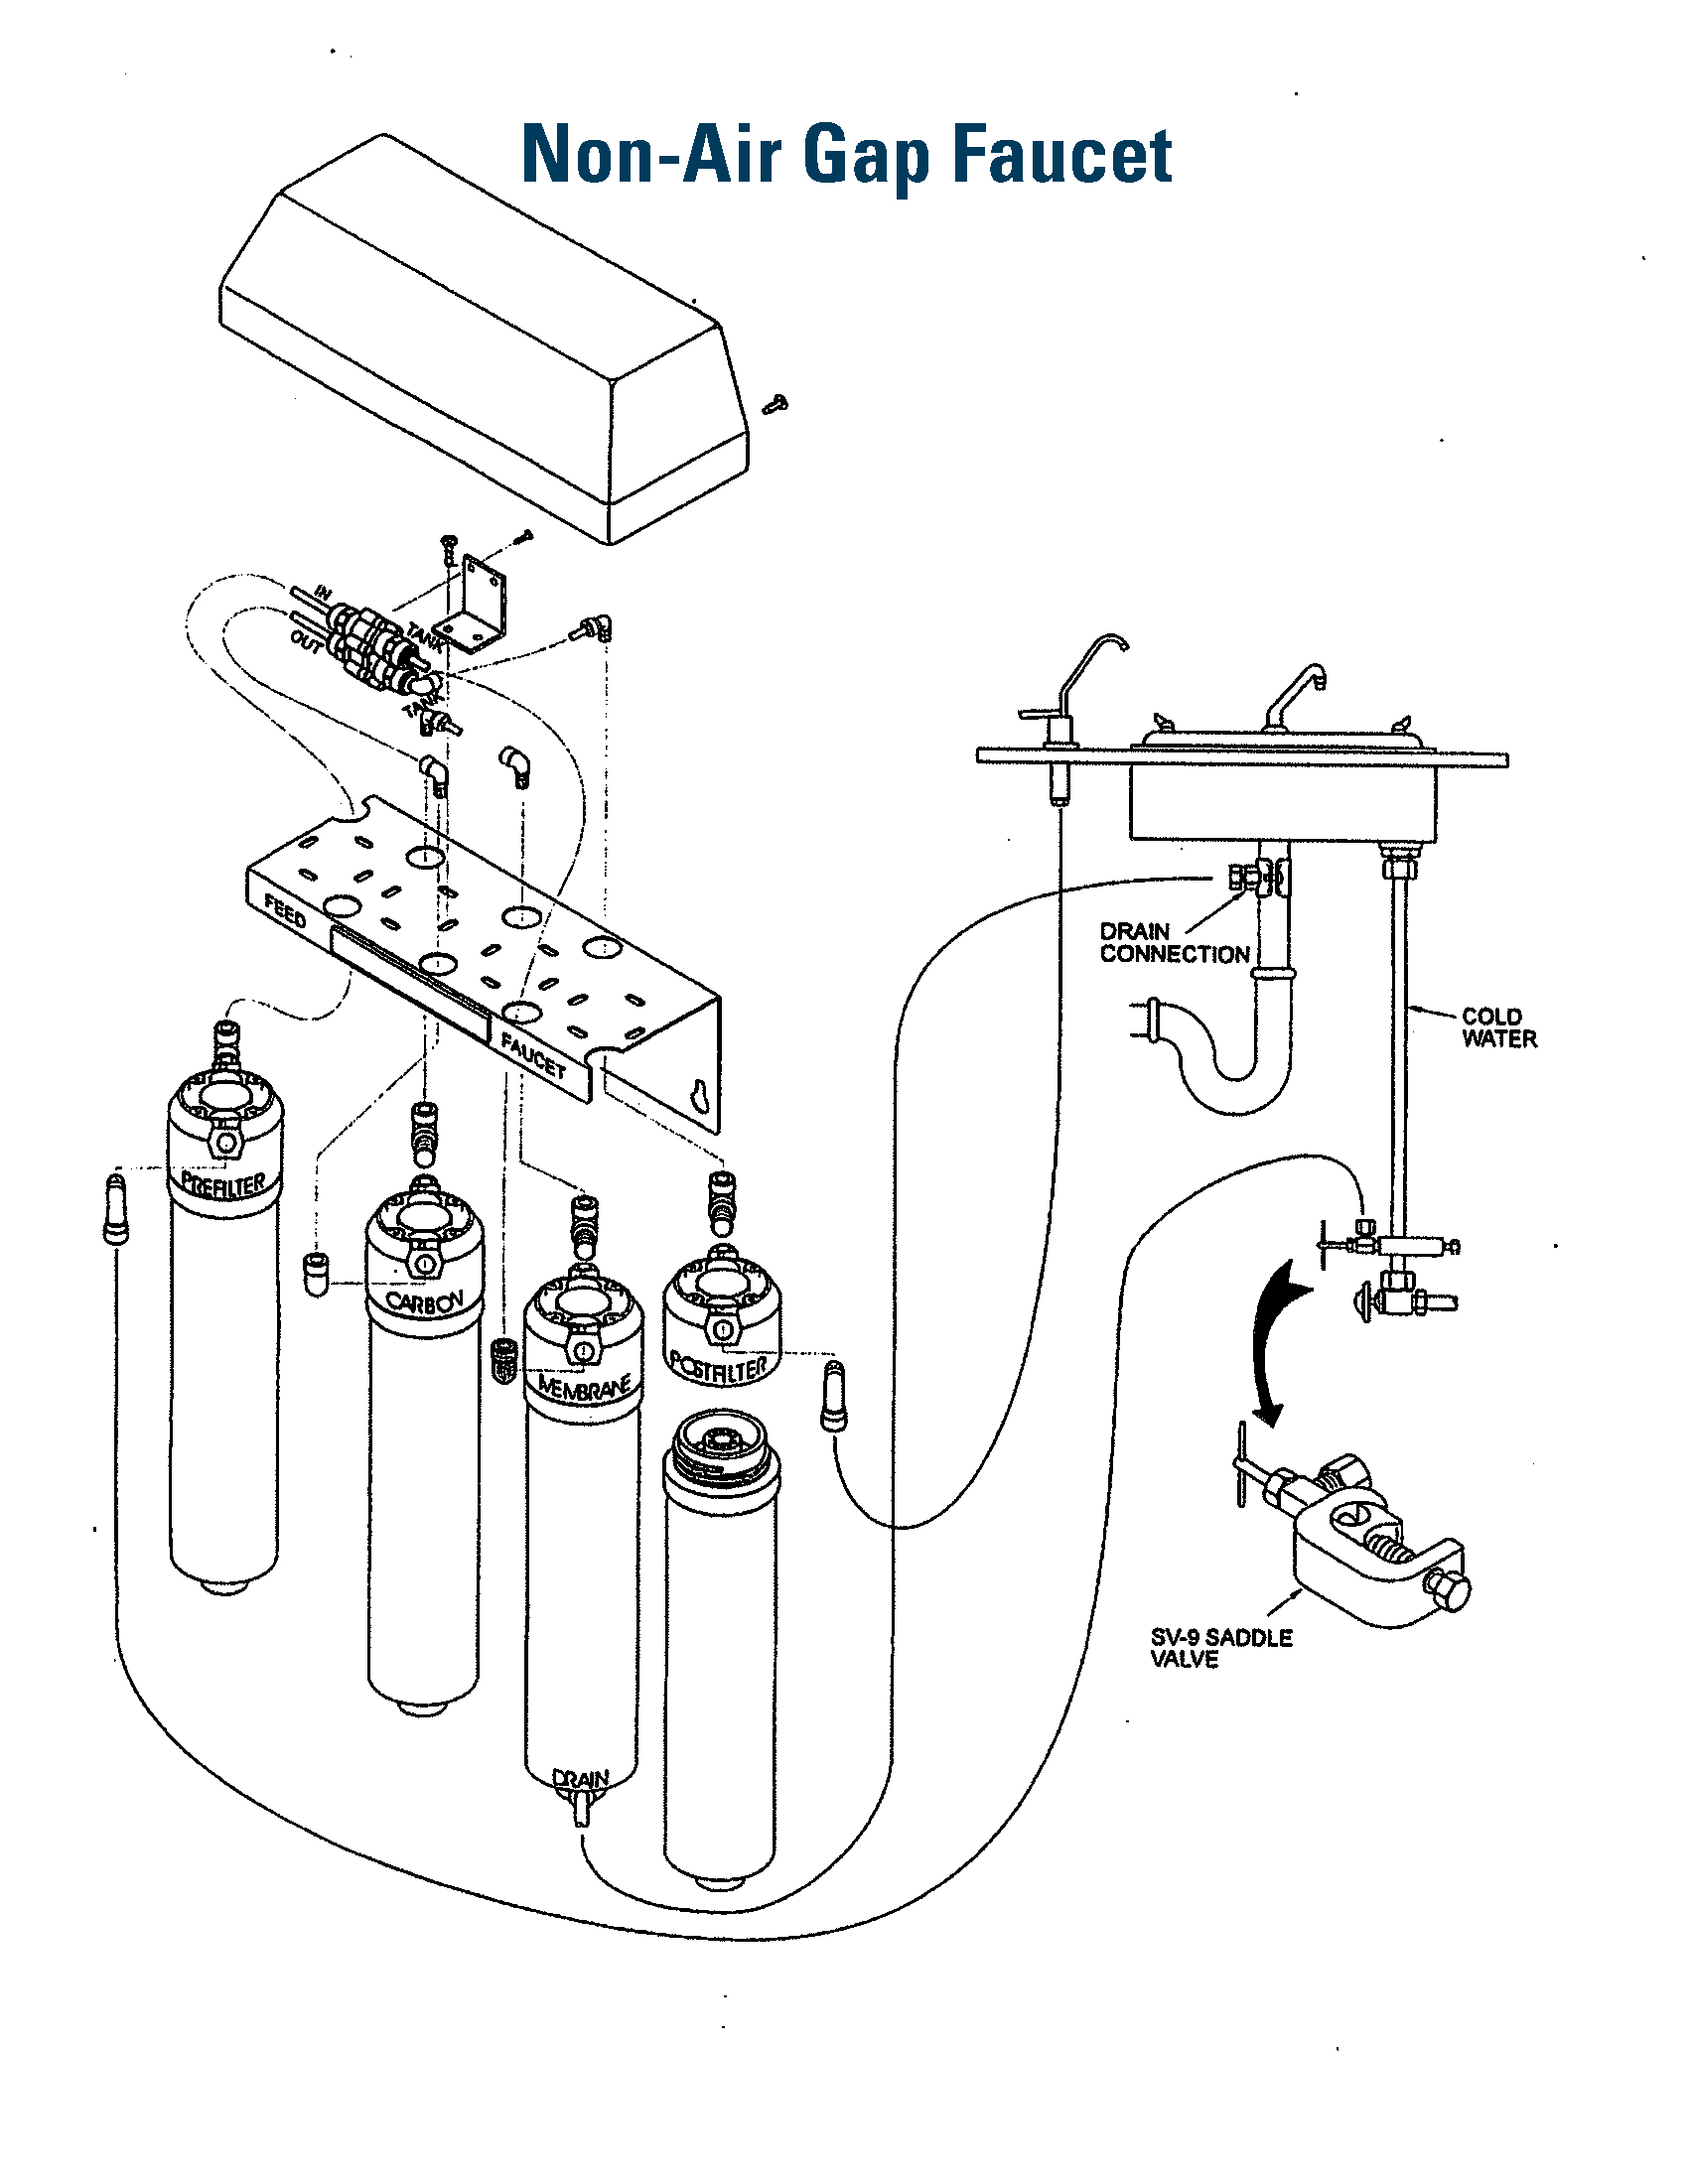 Ro Water Faucet Diagram Example Electrical Wiring Modine Pah36af Pdf Air Gap Vs Non Esp Products Rh Espwaterproducts Com Metal Washer For Reverse Osmosis Install